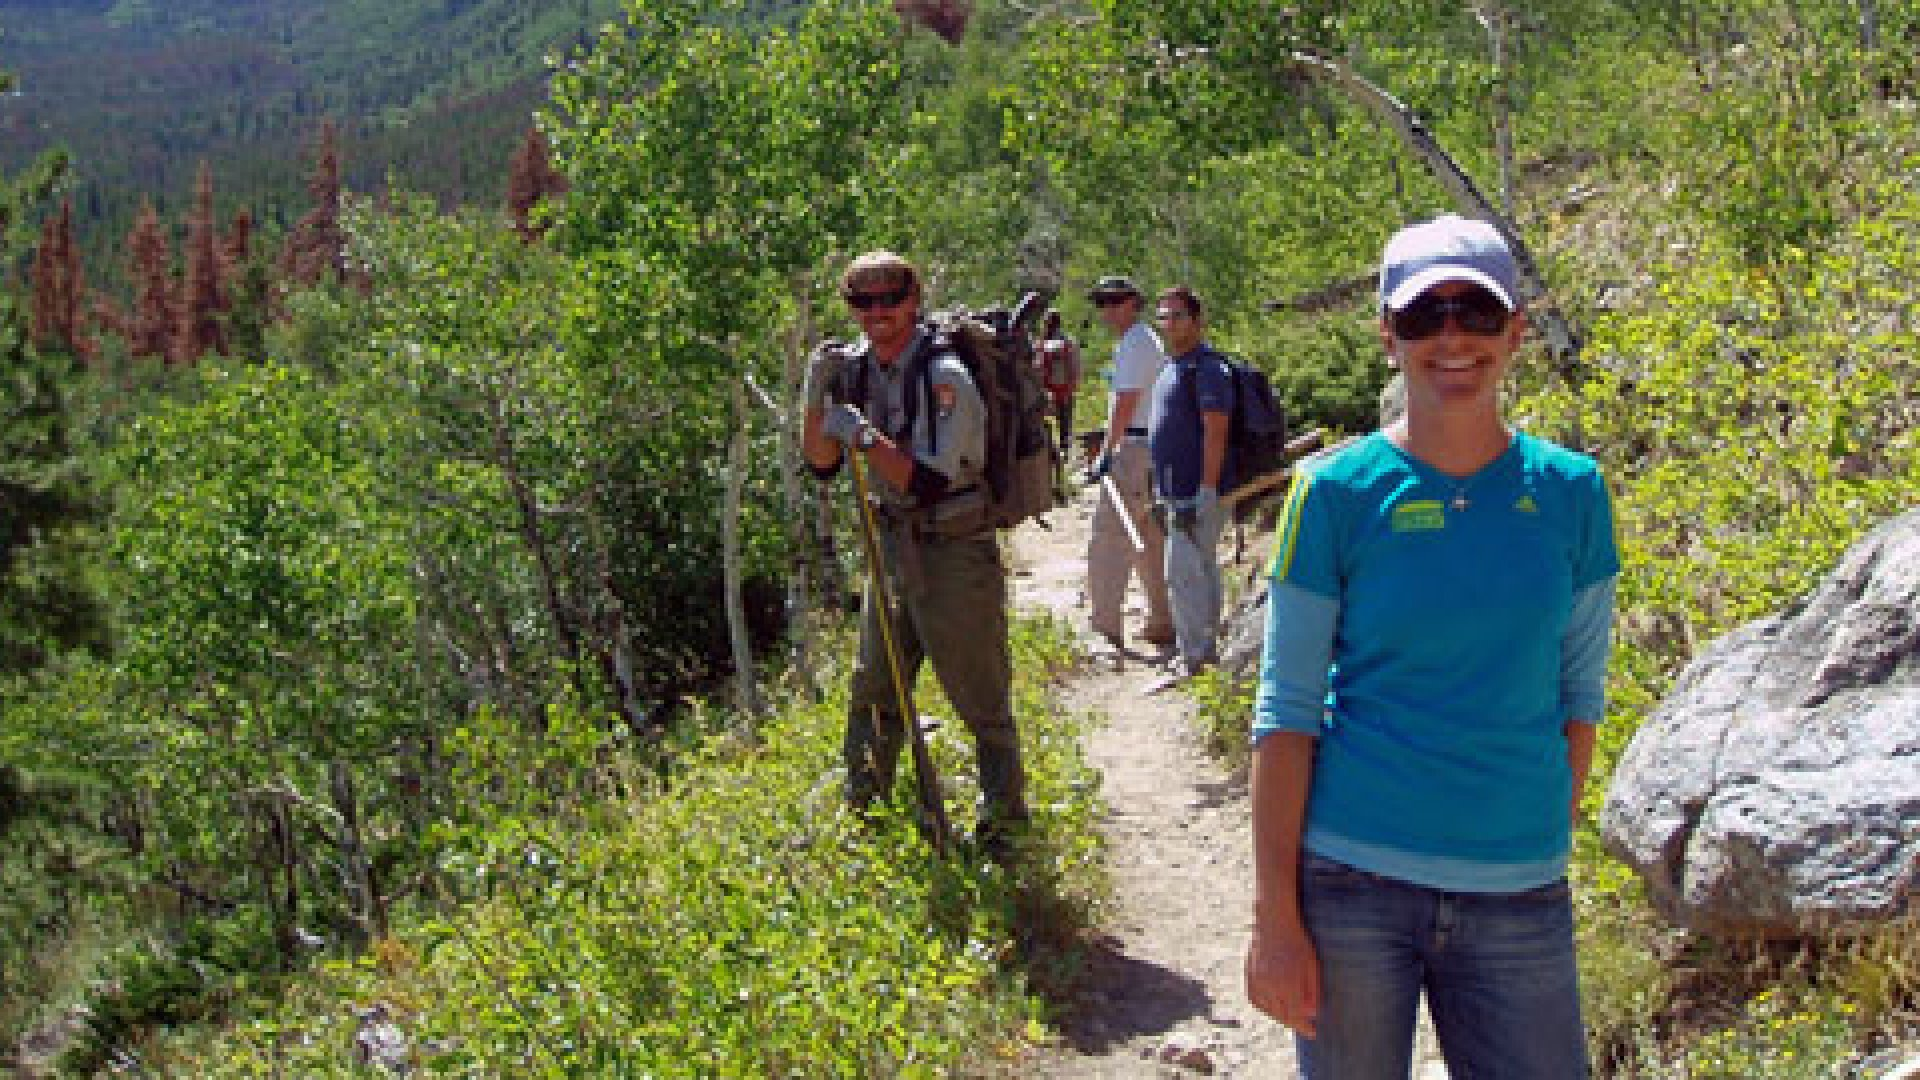 Readytalk employees cleaning up a trail in Rocky Mountain National Park last August in Estes Park, Colo.